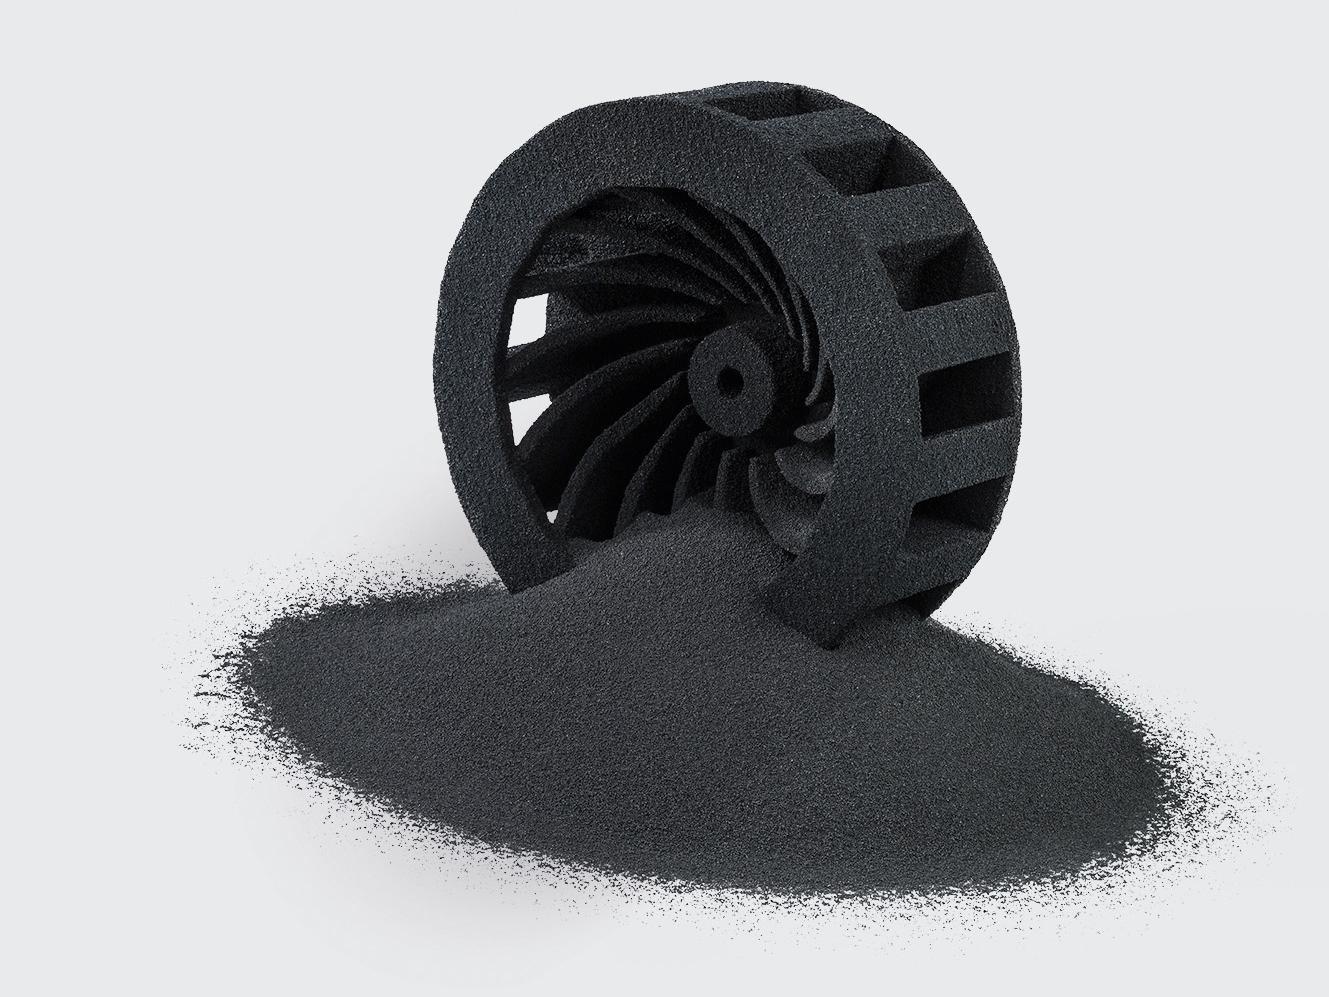 Component made with 3D printing and CARBOPRINT